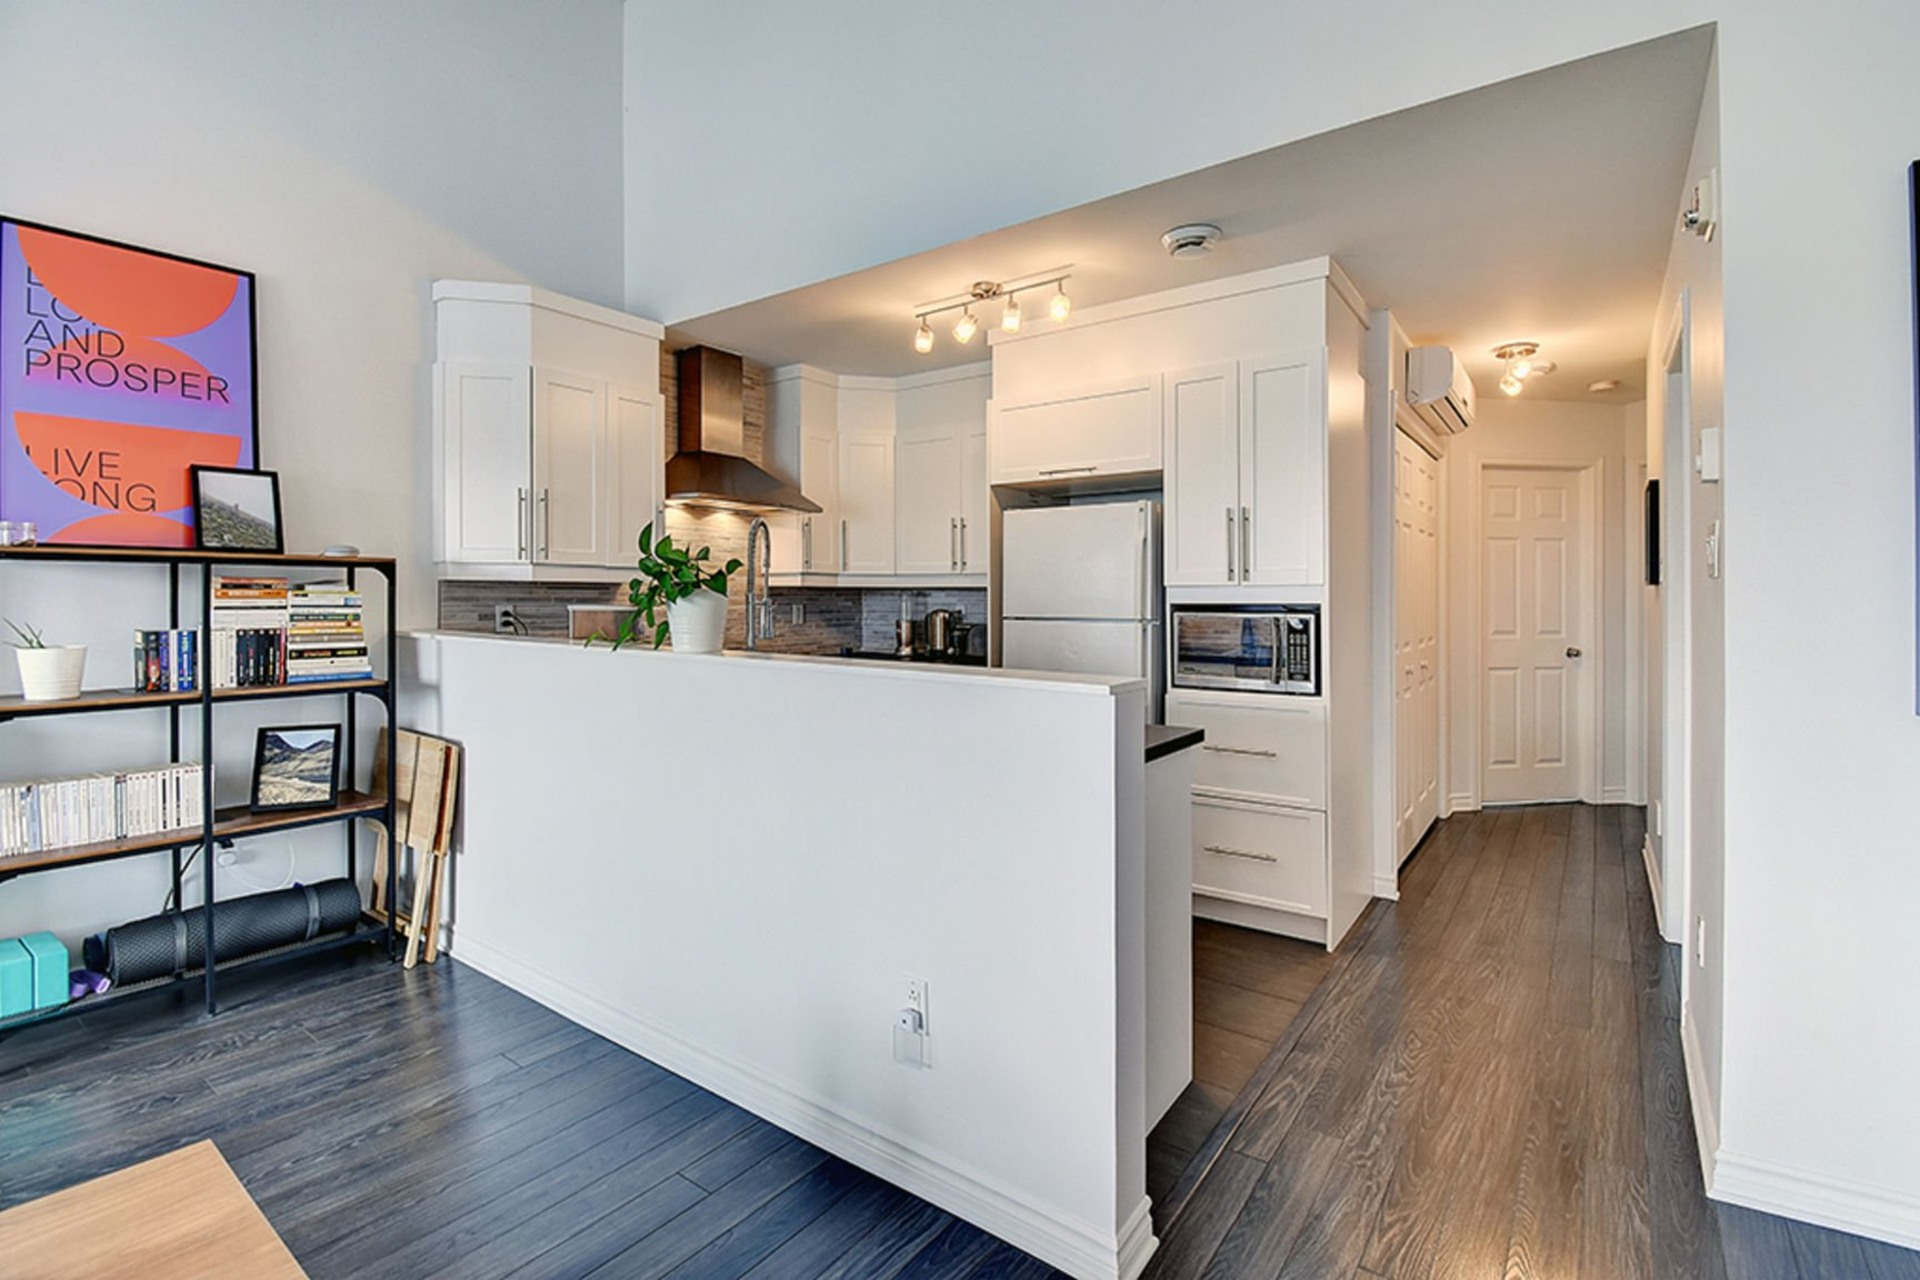 image 9 - Apartment For sale Brossard - 5 rooms